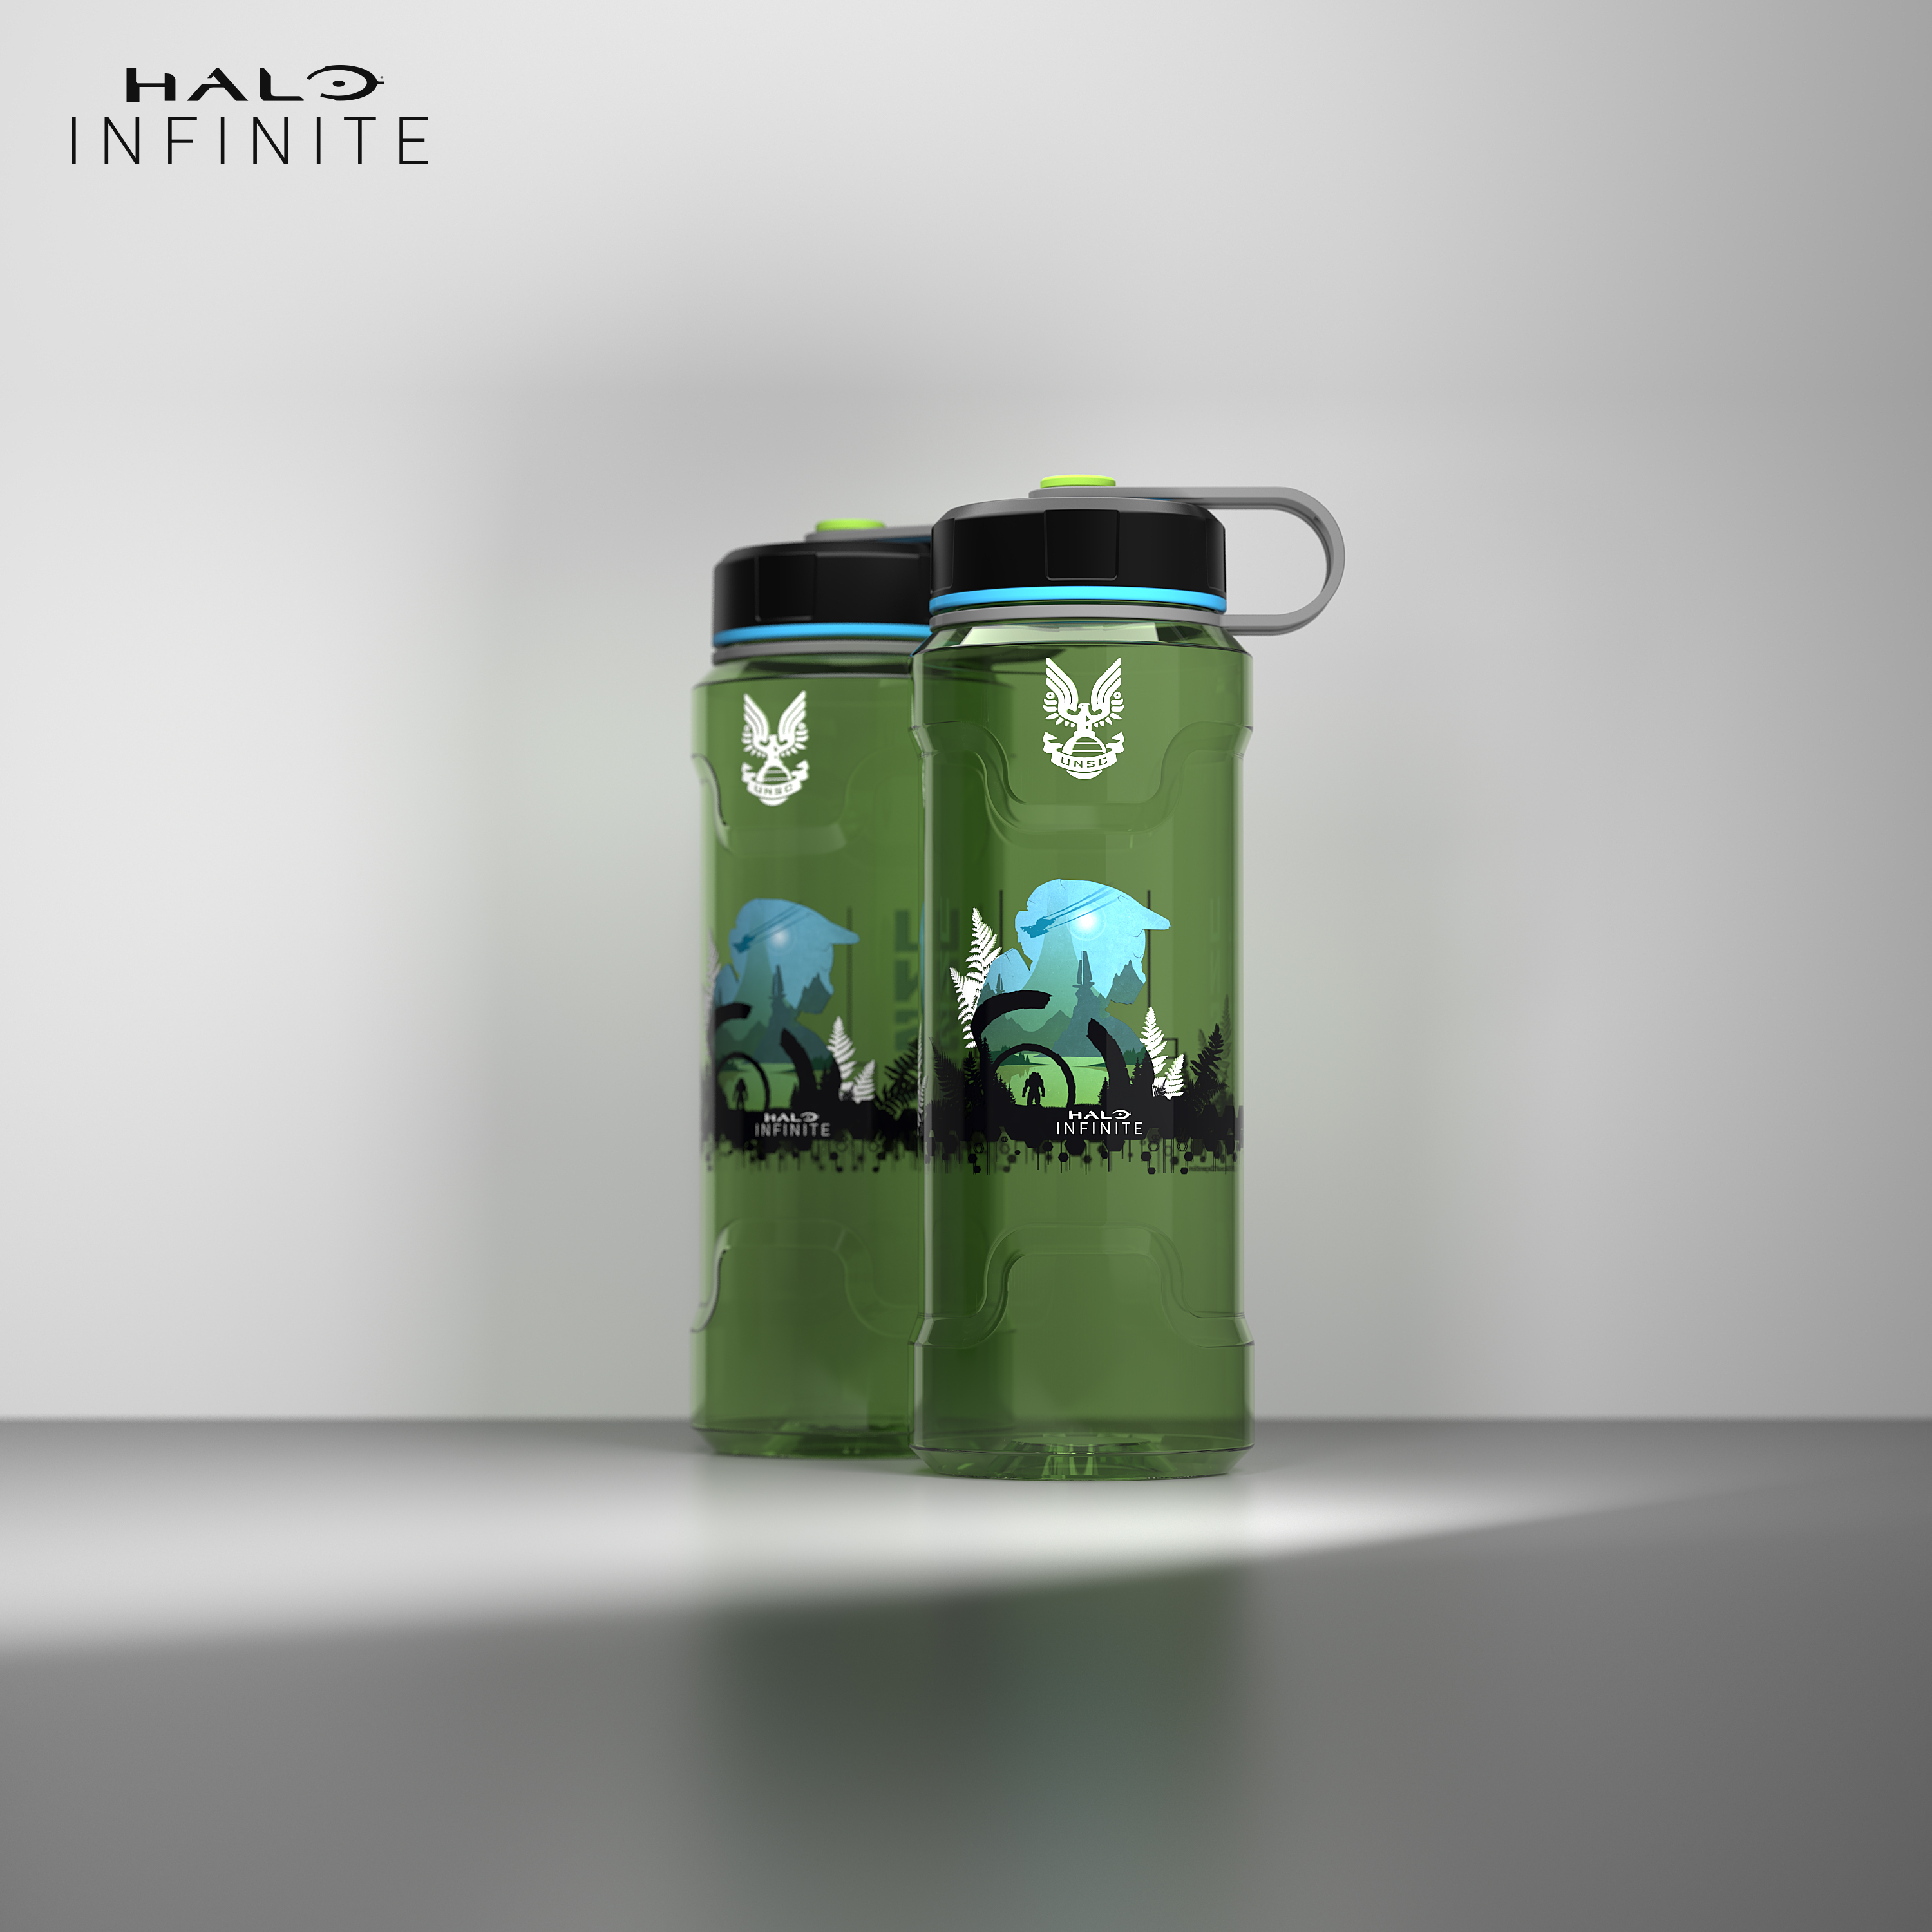 Halo 36 ounce Reusable Plastic Water Bottle, United Nations Space Command slideshow image 9